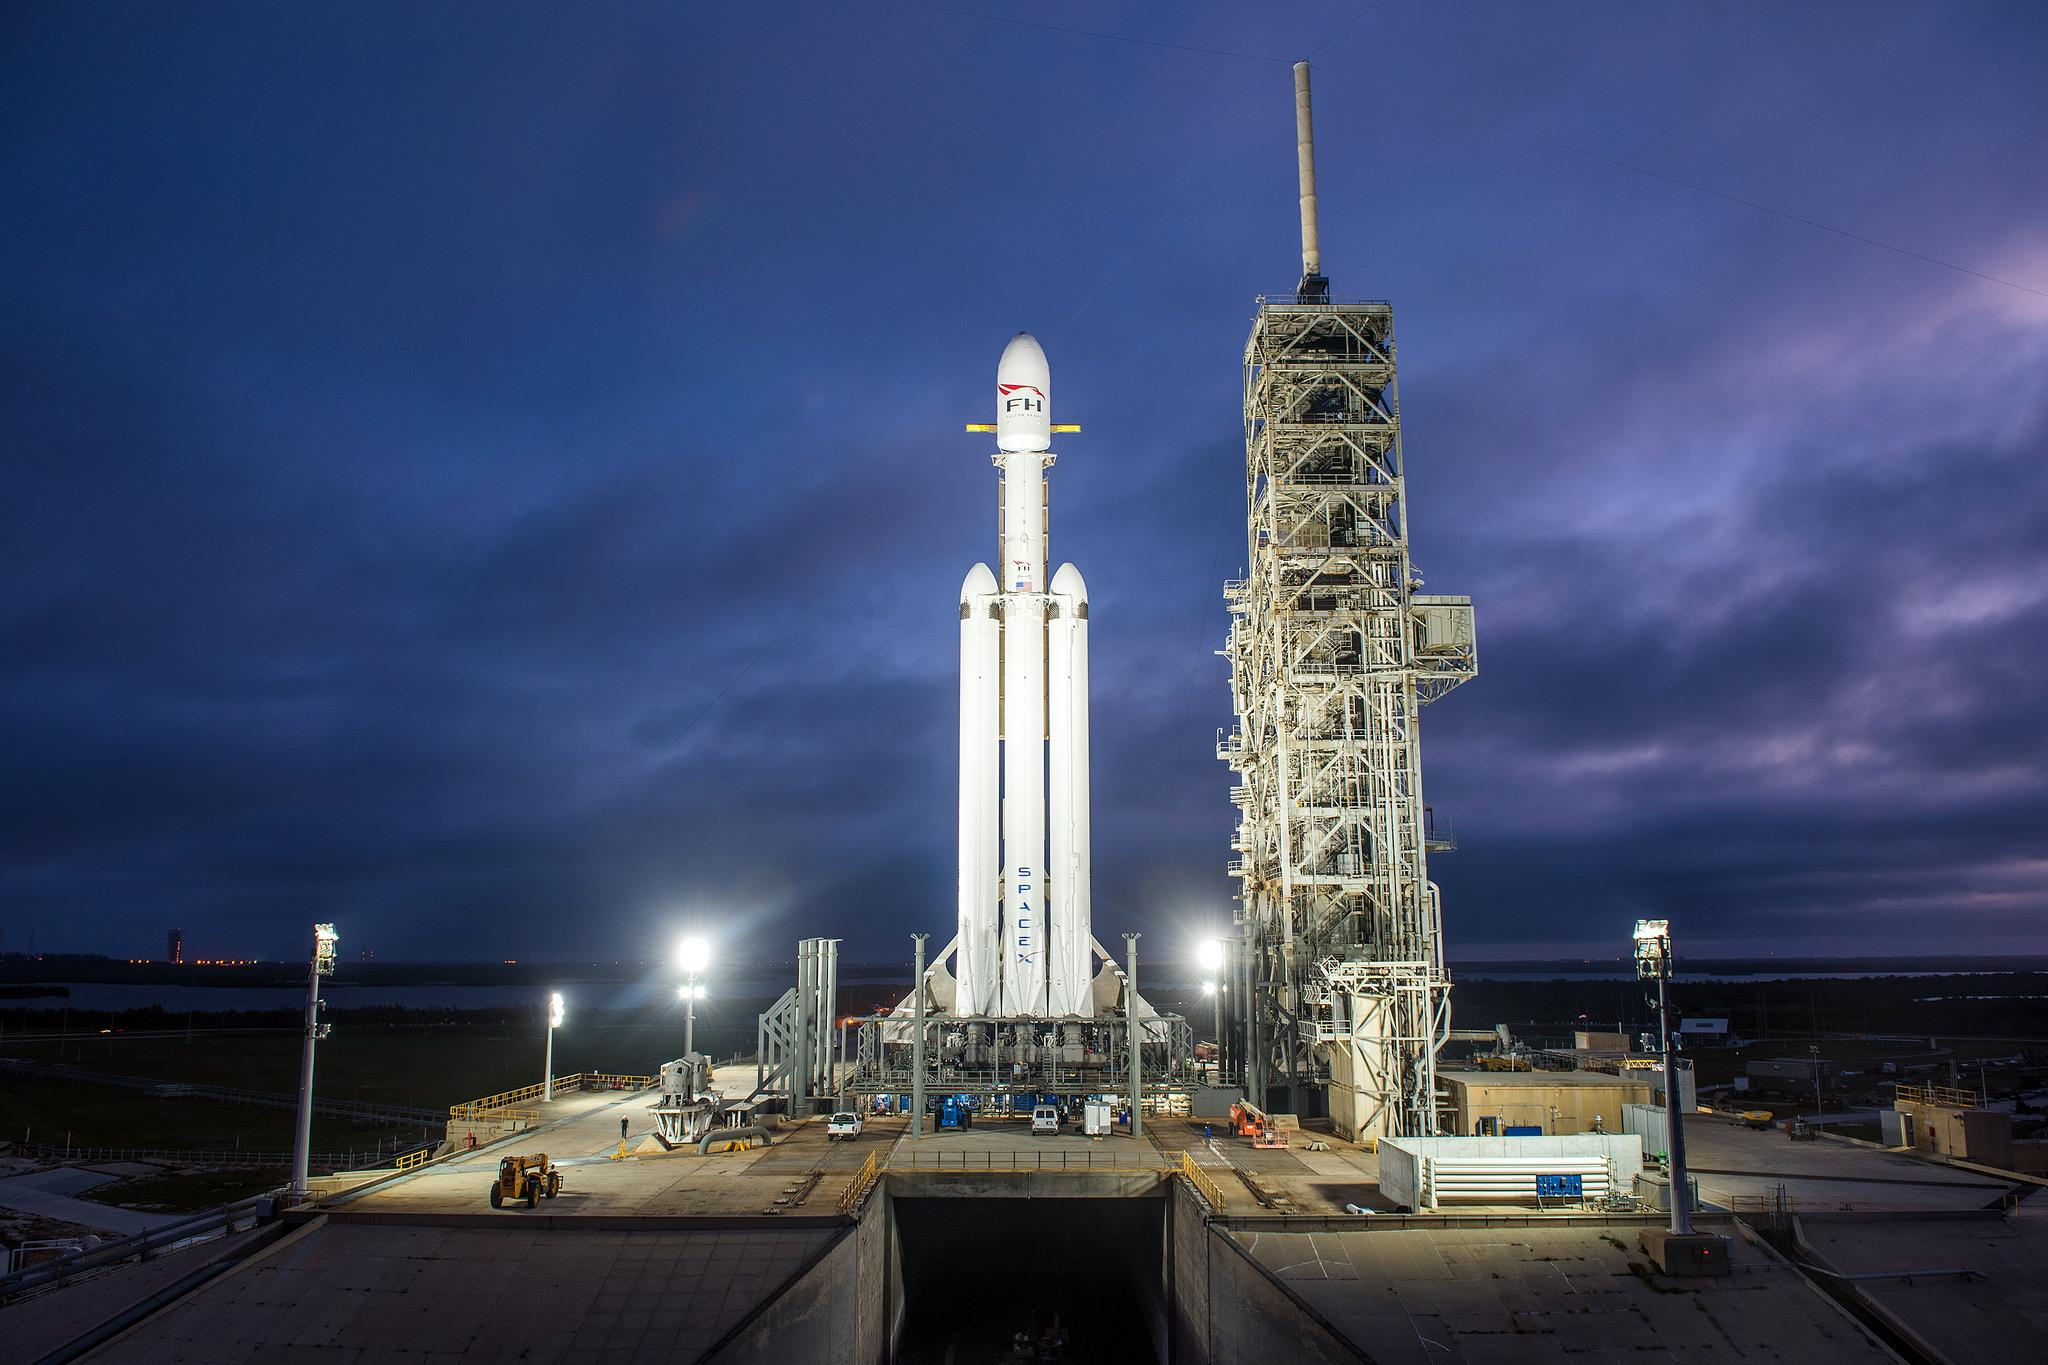 spacex falcon heavy launch today - HD2048×1365